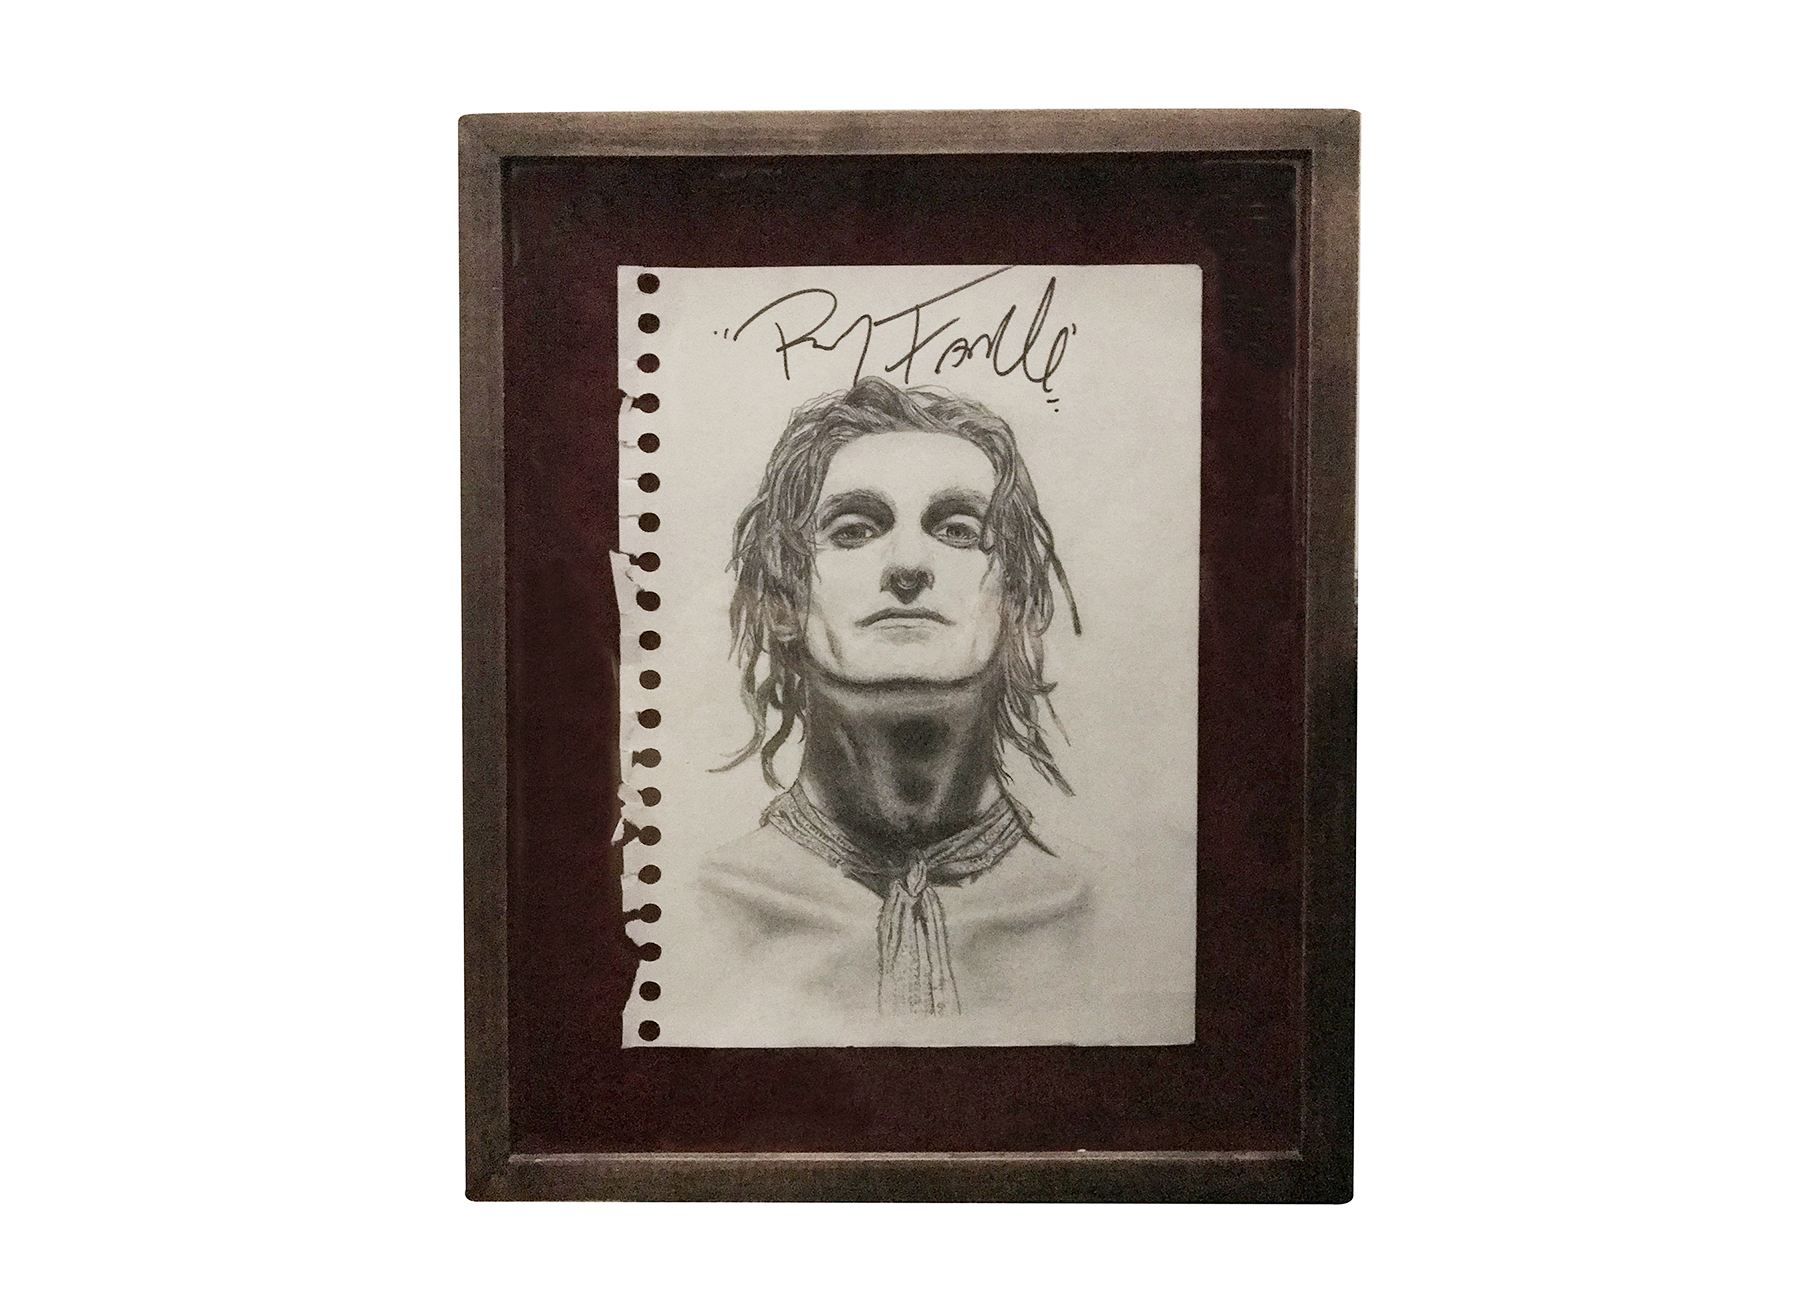 Perry (1991) (signed by Perry Farrell in 2003 at Tower Records NYC)-  Pencil on Paper